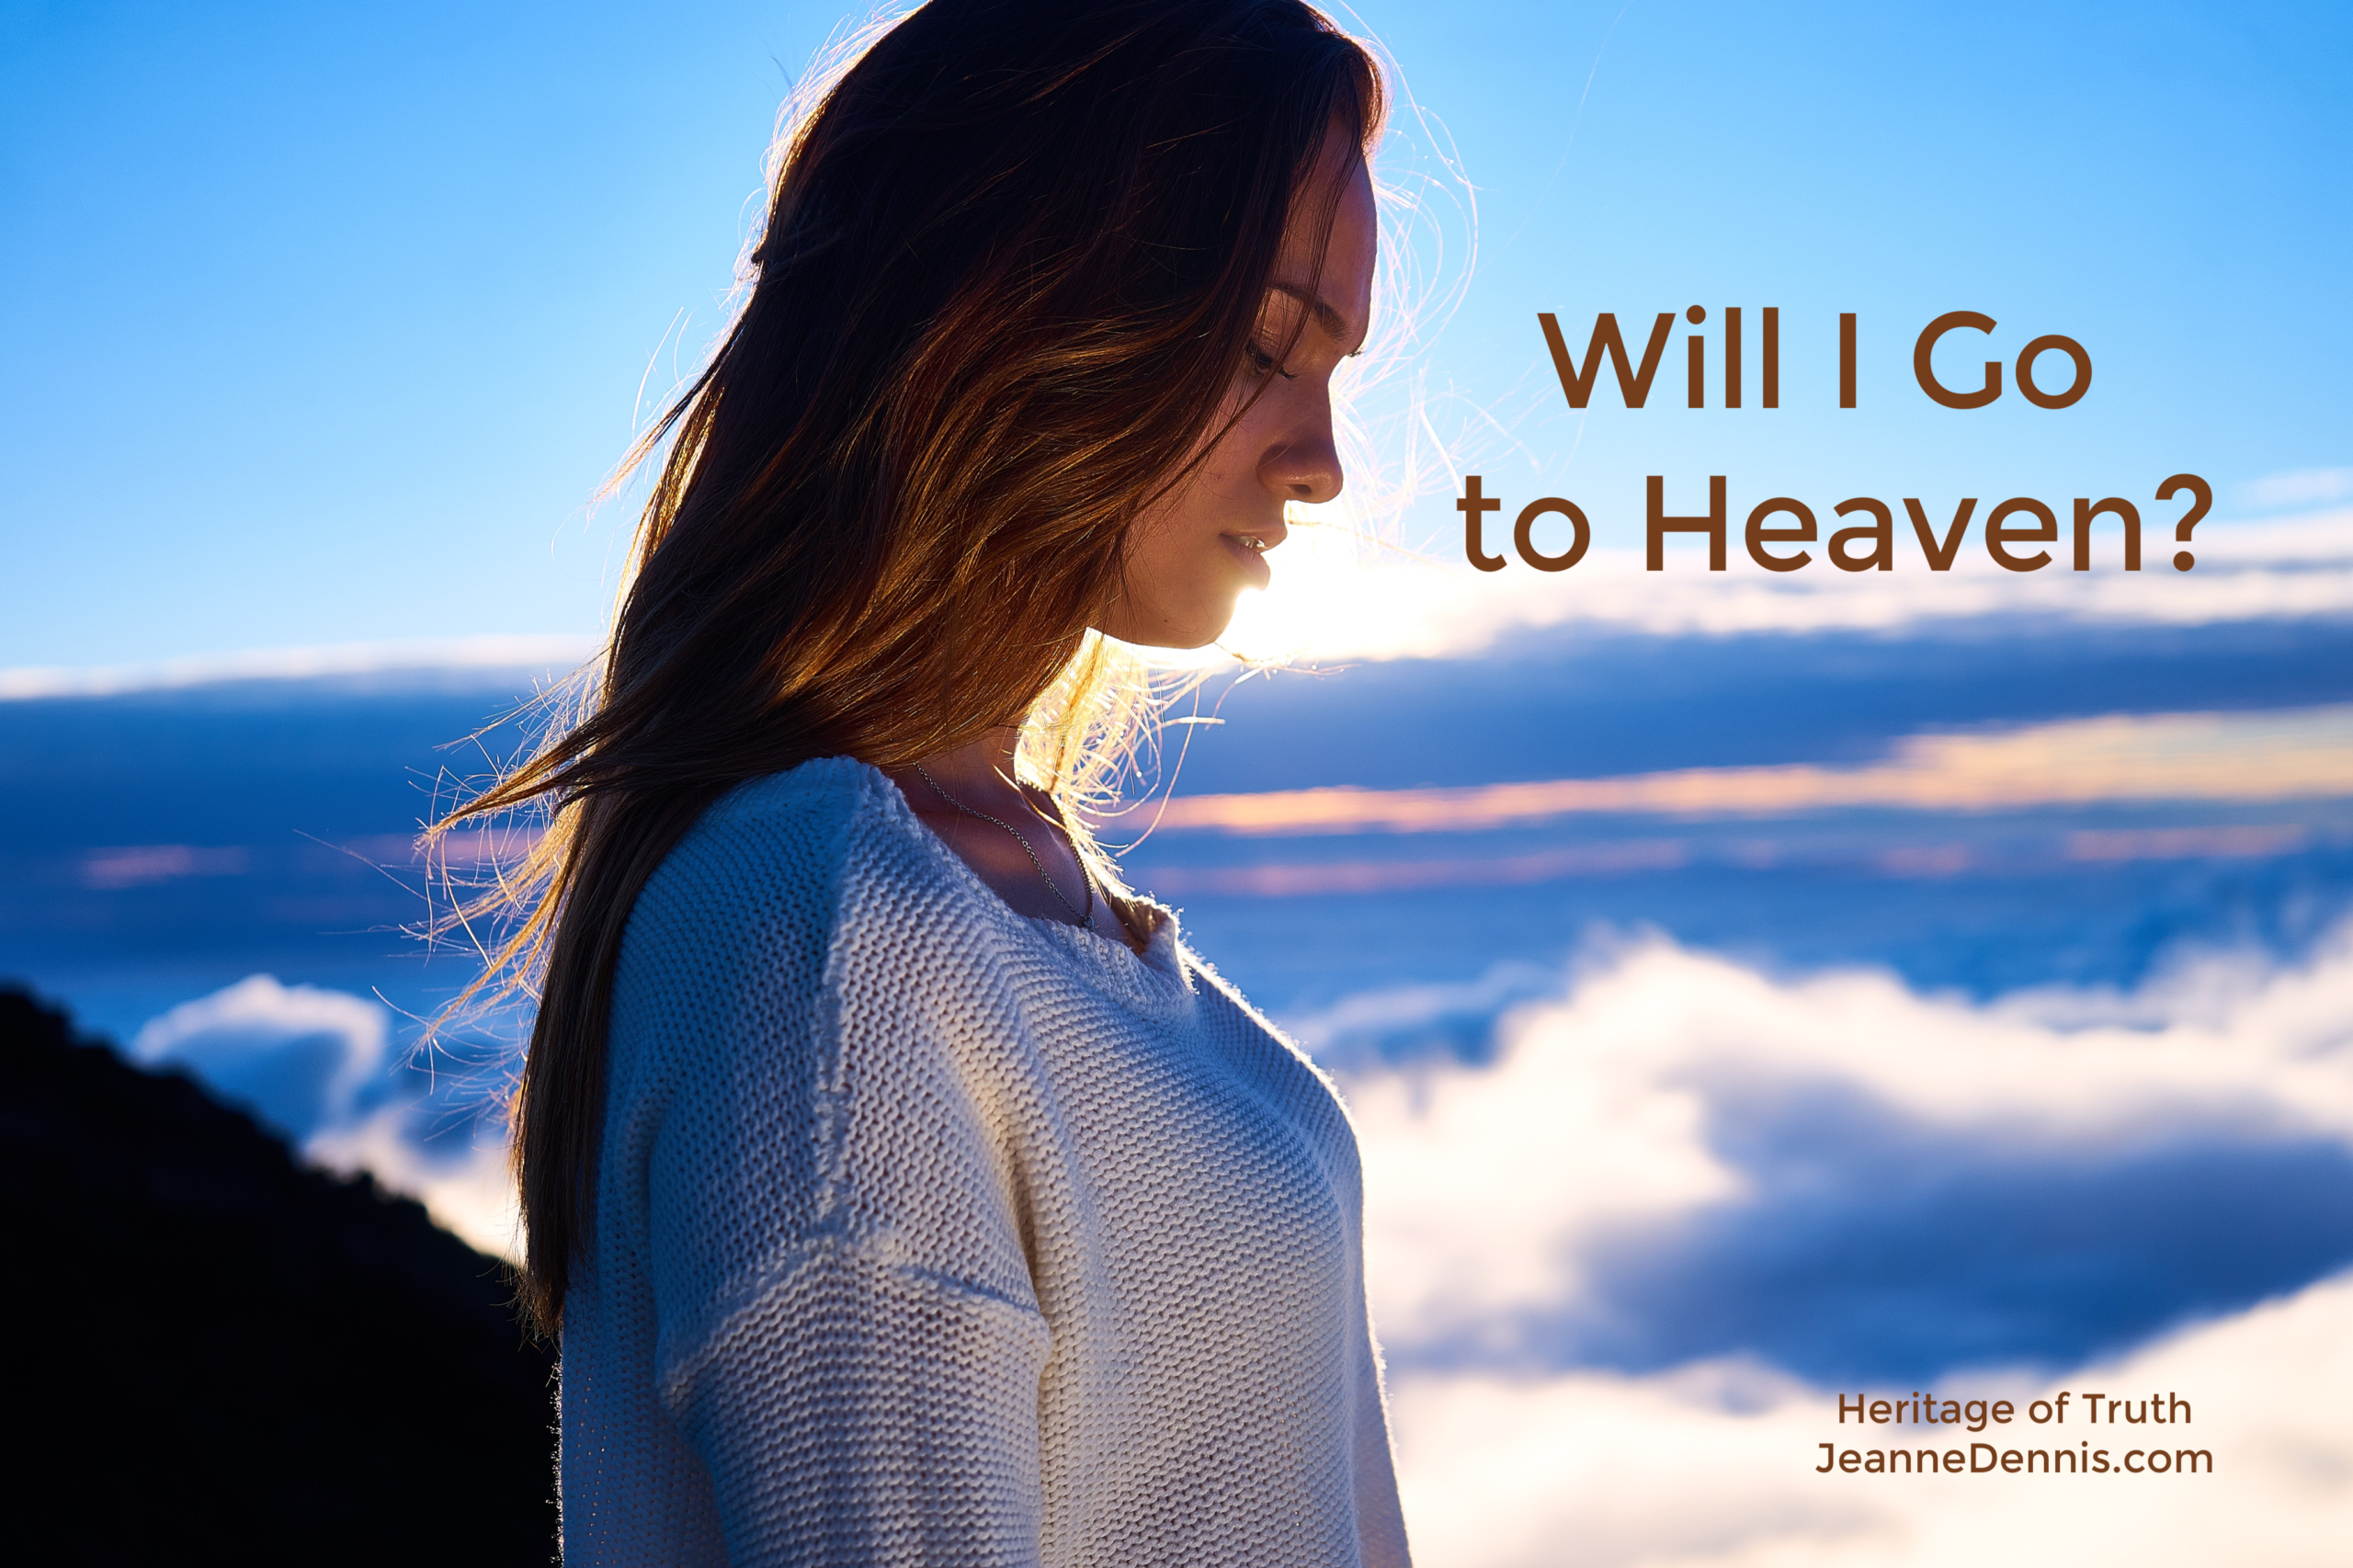 Will I Go to Heaven? Heritage of Truth, JeanneDennis.com